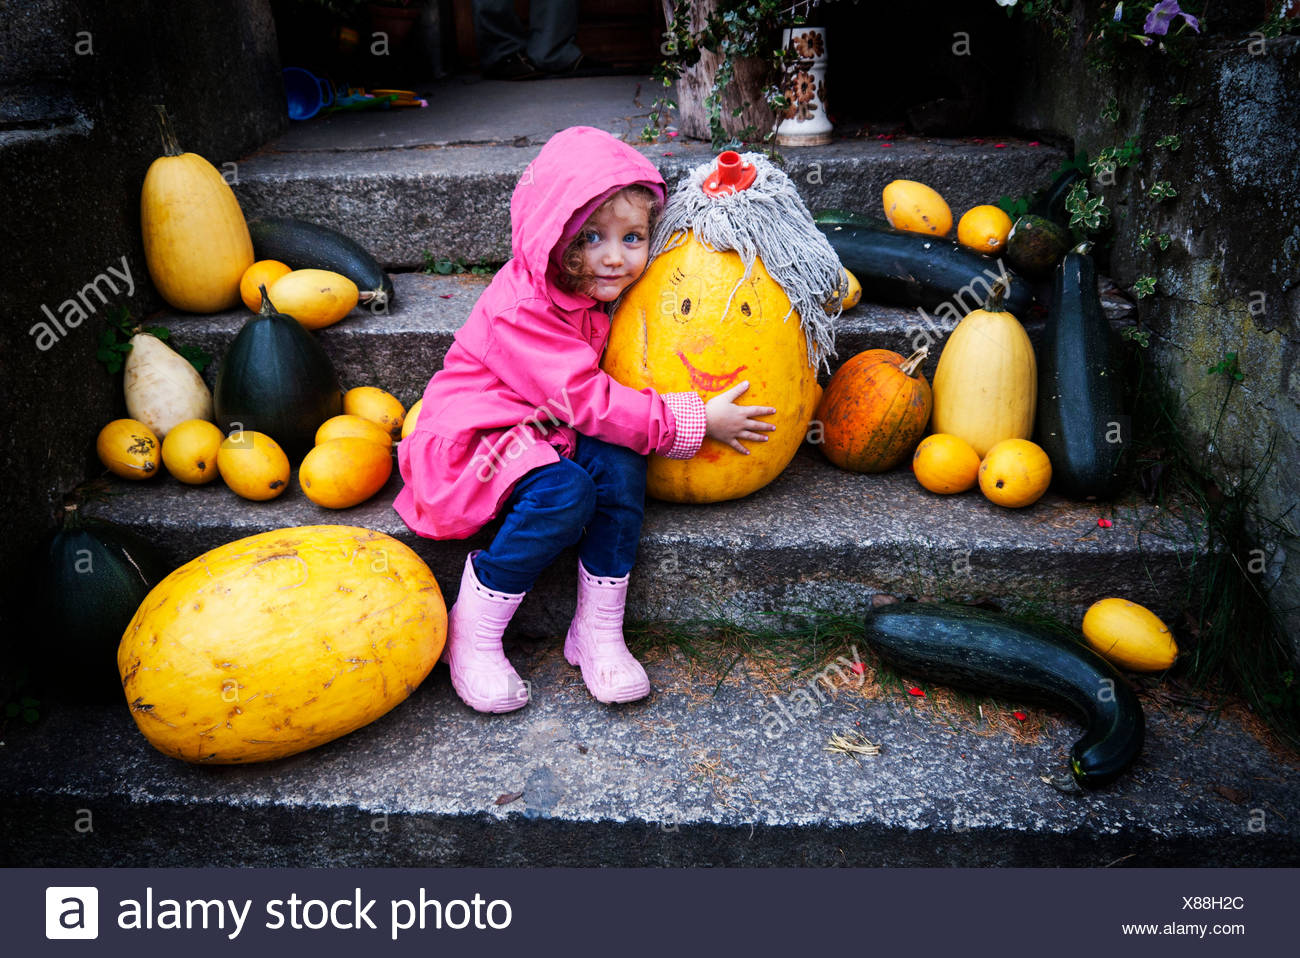 Girl (4-5) embracing pumpkin with mop on its head - Stock Image